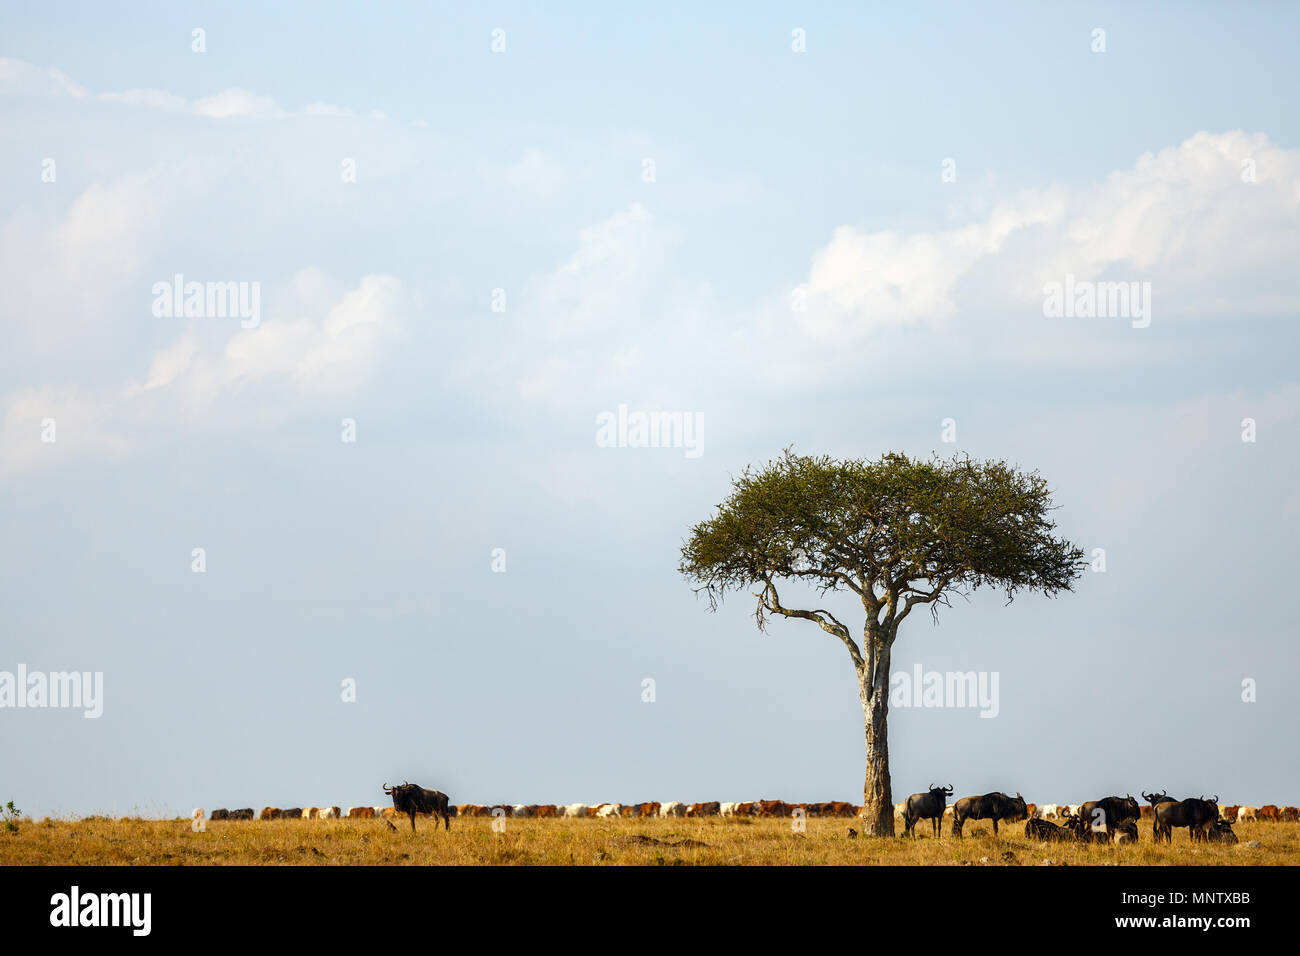 Wildebeests under acacia tree in Masai Mara Kenya - Stock Image